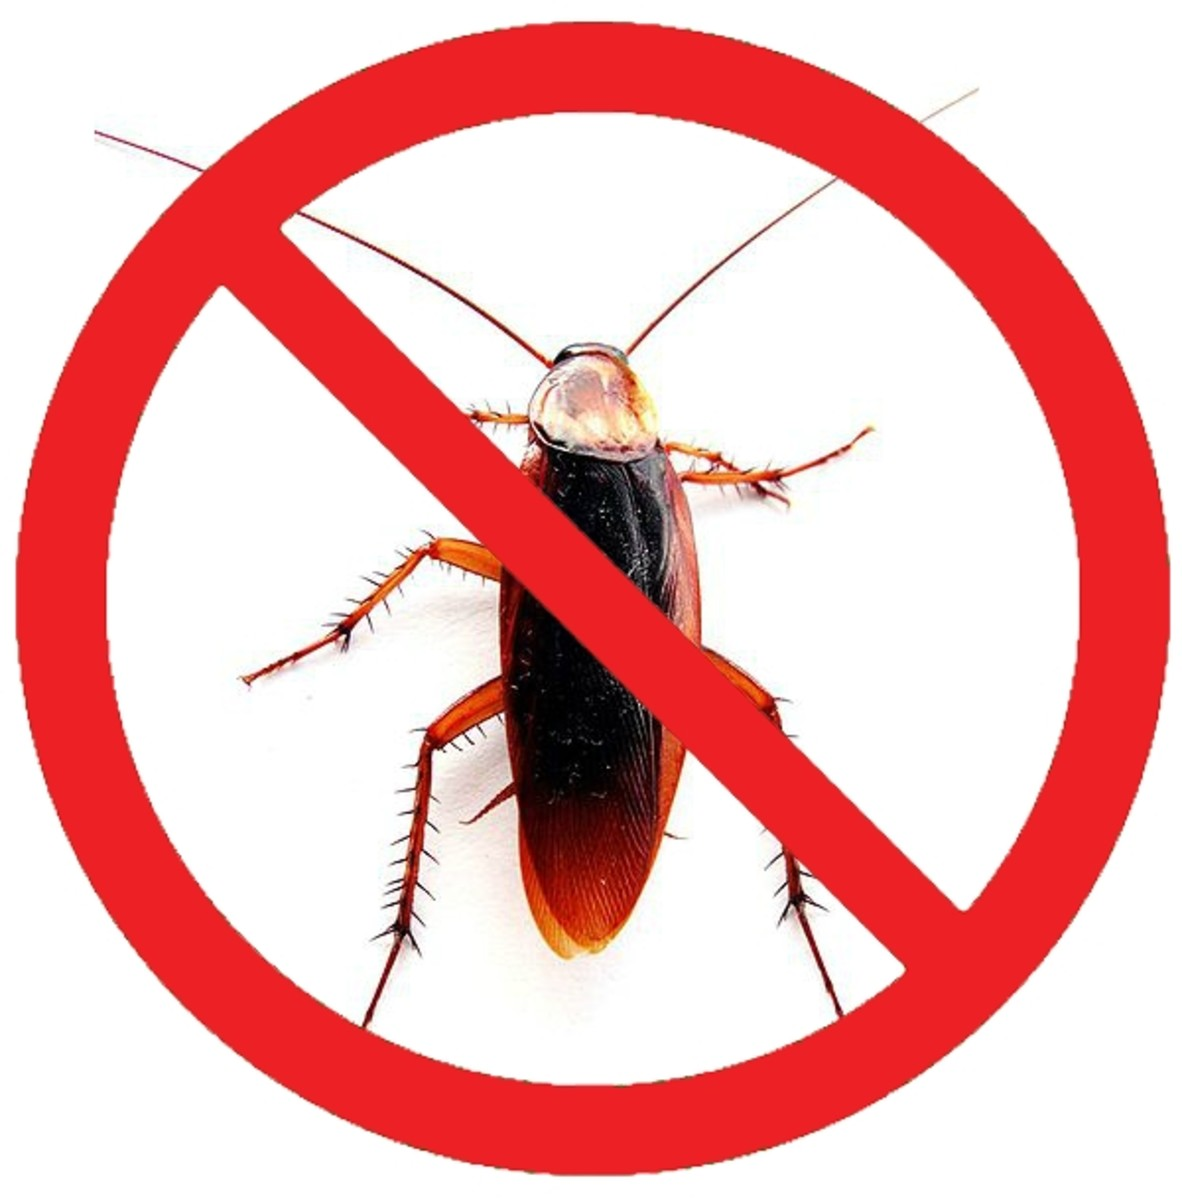 Get Rid of Roaches Yourself